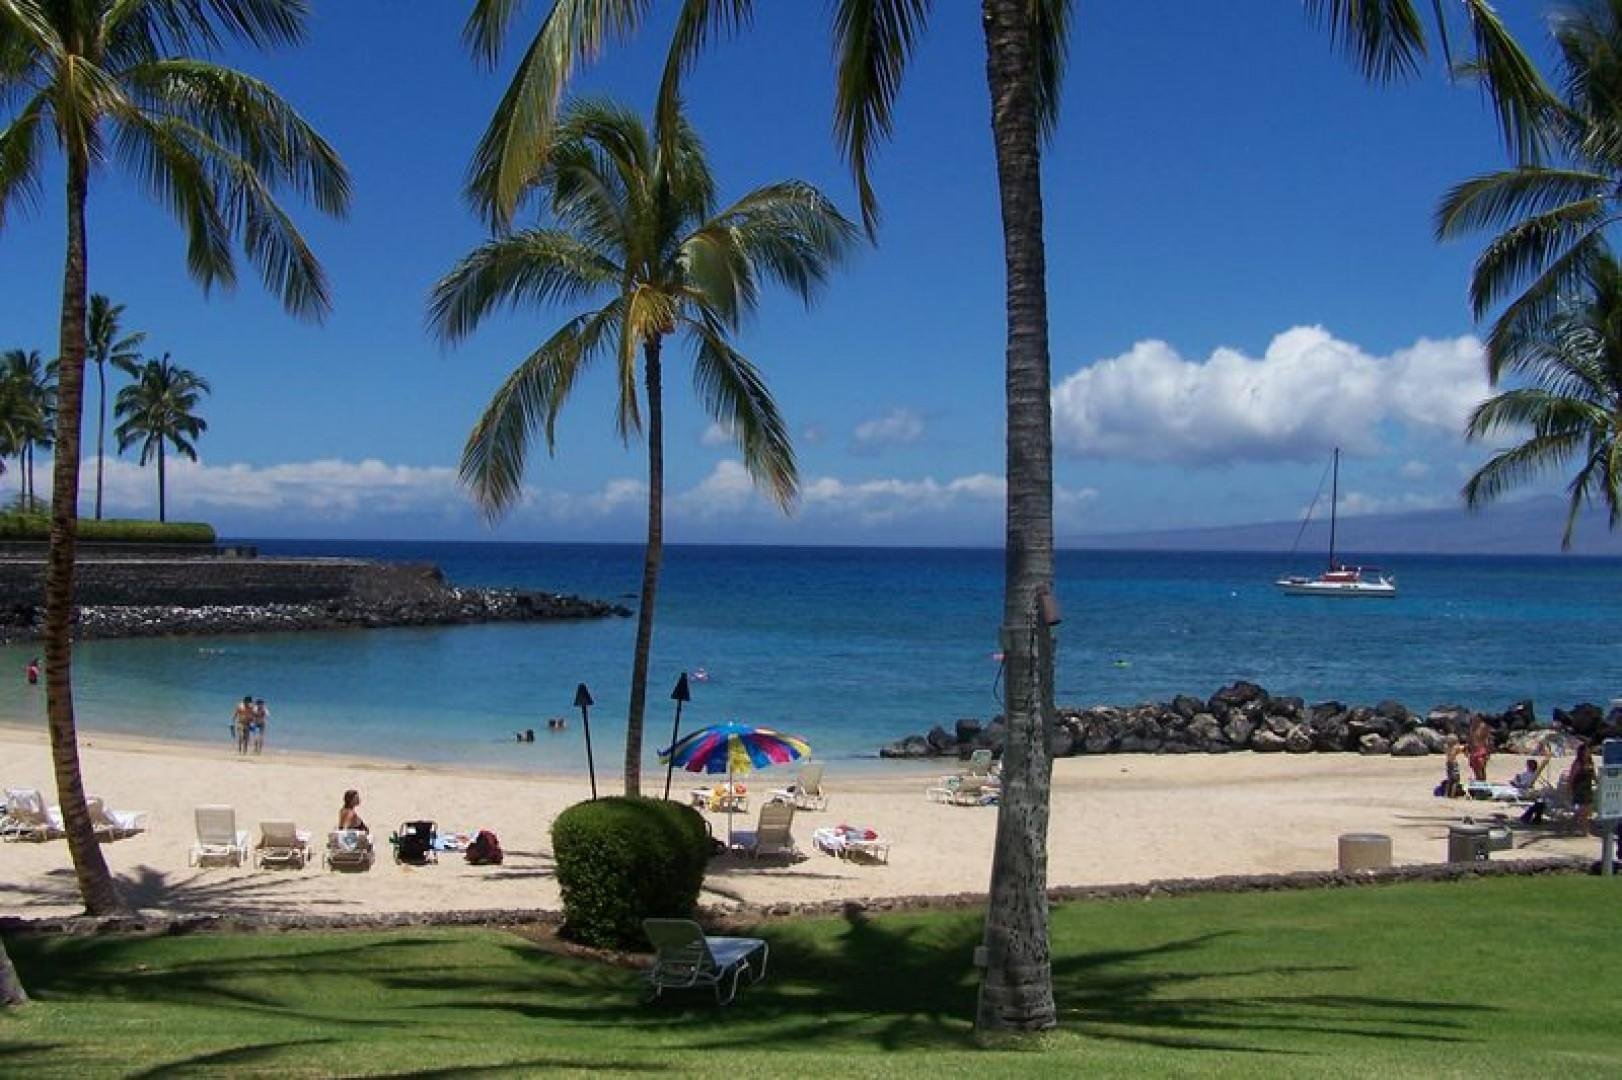 Enjoy relaxing in the sun or shade or have lunch at Napua.